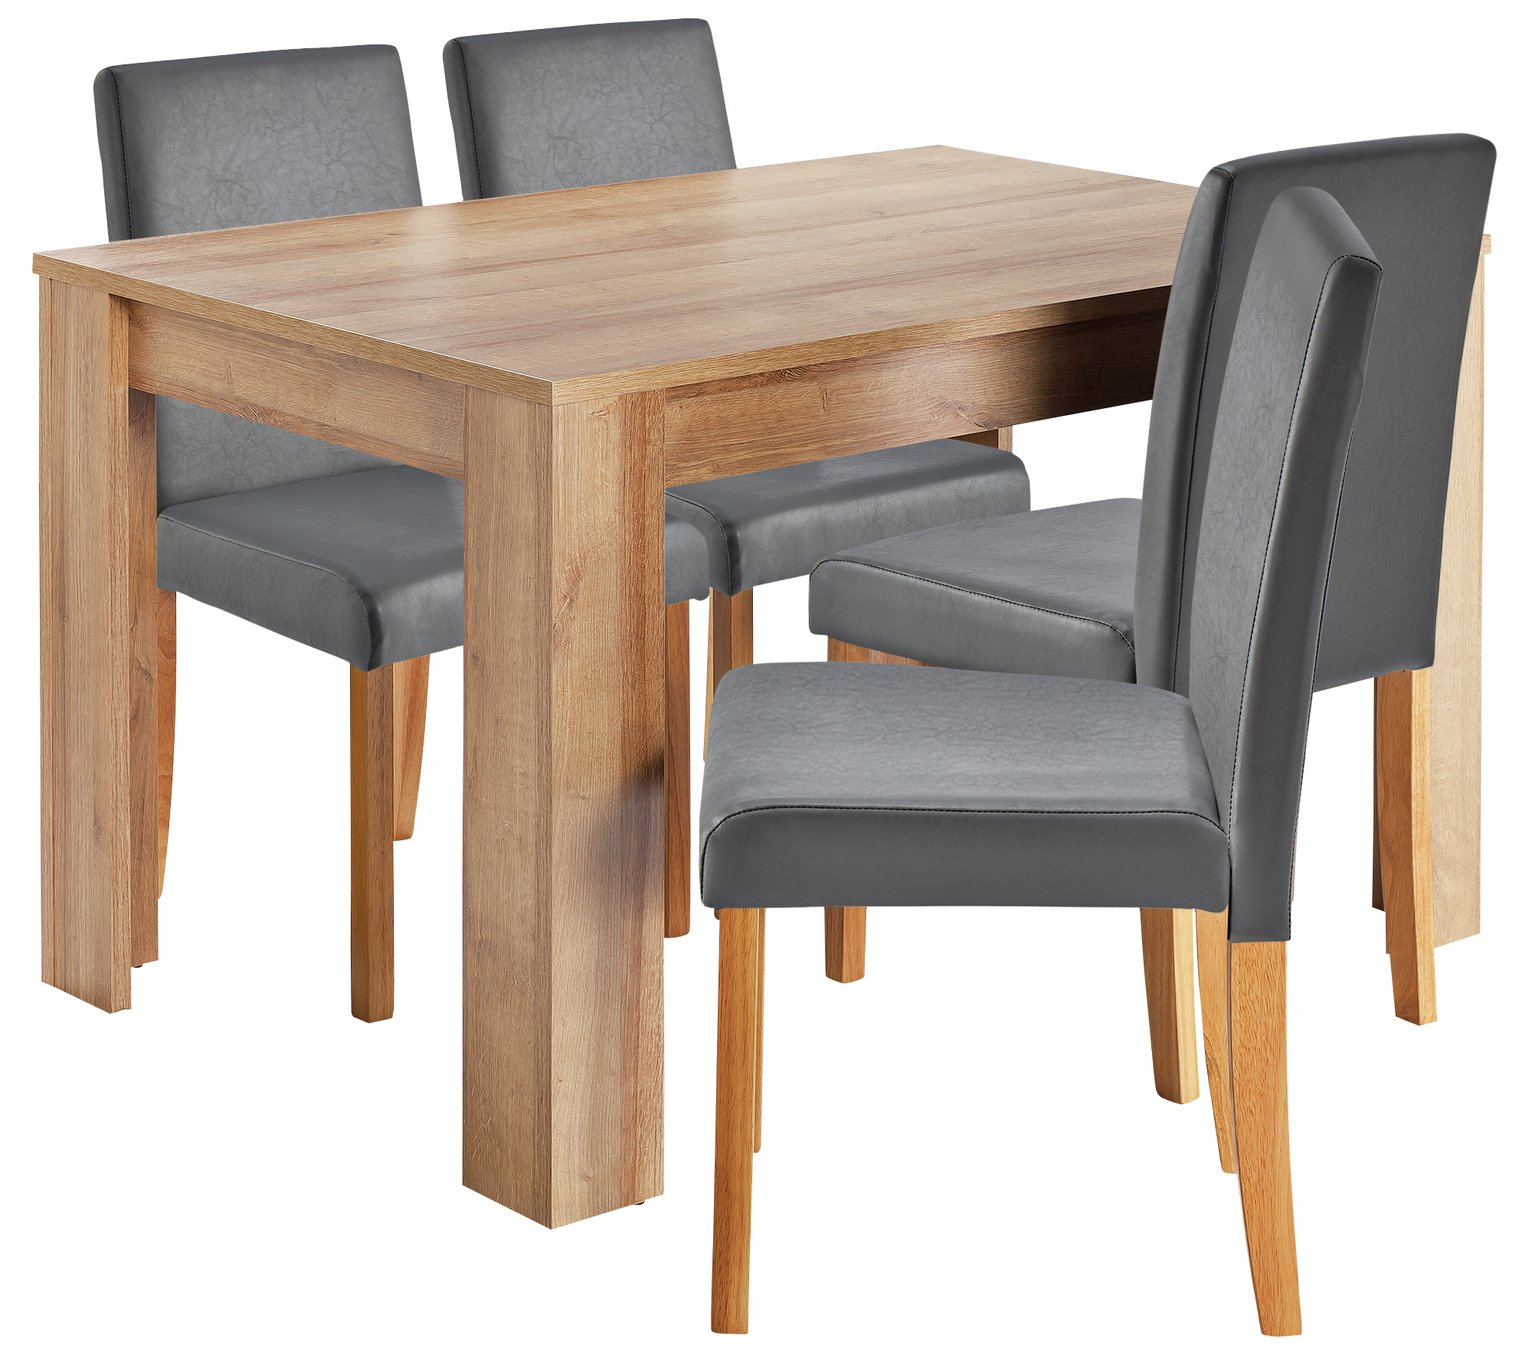 Image of HOME Miami Dining Table & 4 Chairs - Grey